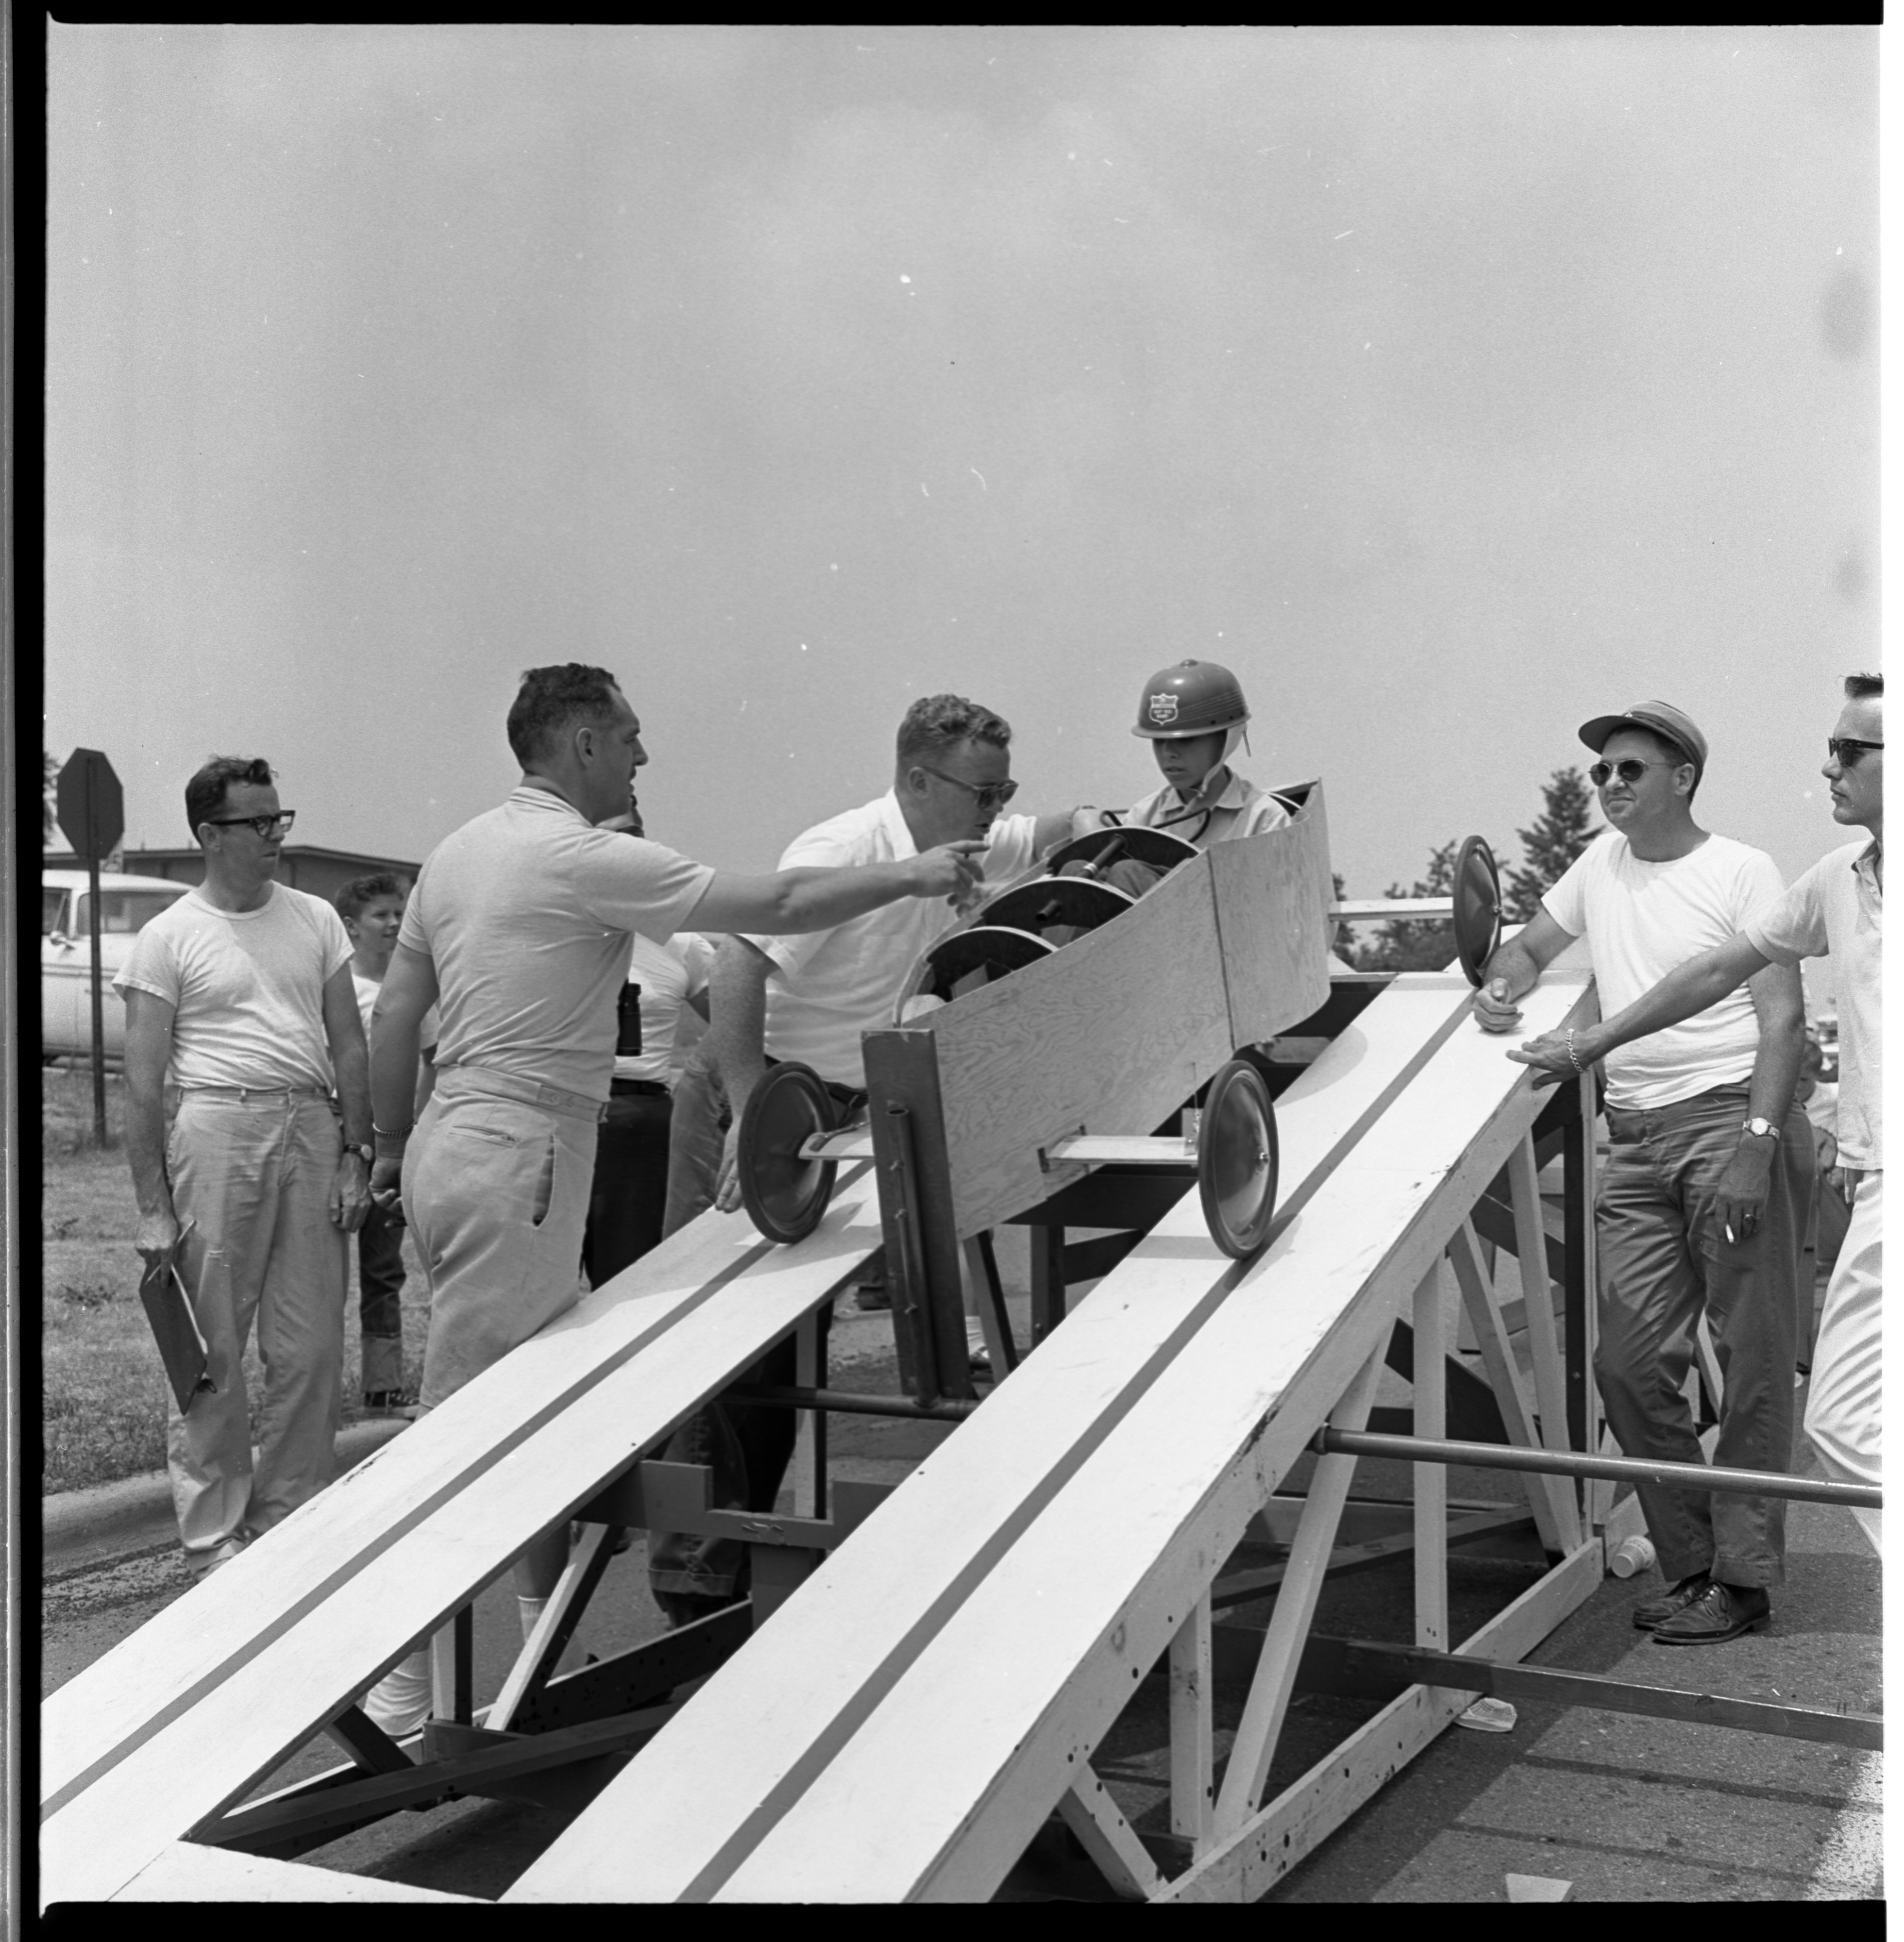 Soap Box Derby Practice Run, July 1963 image